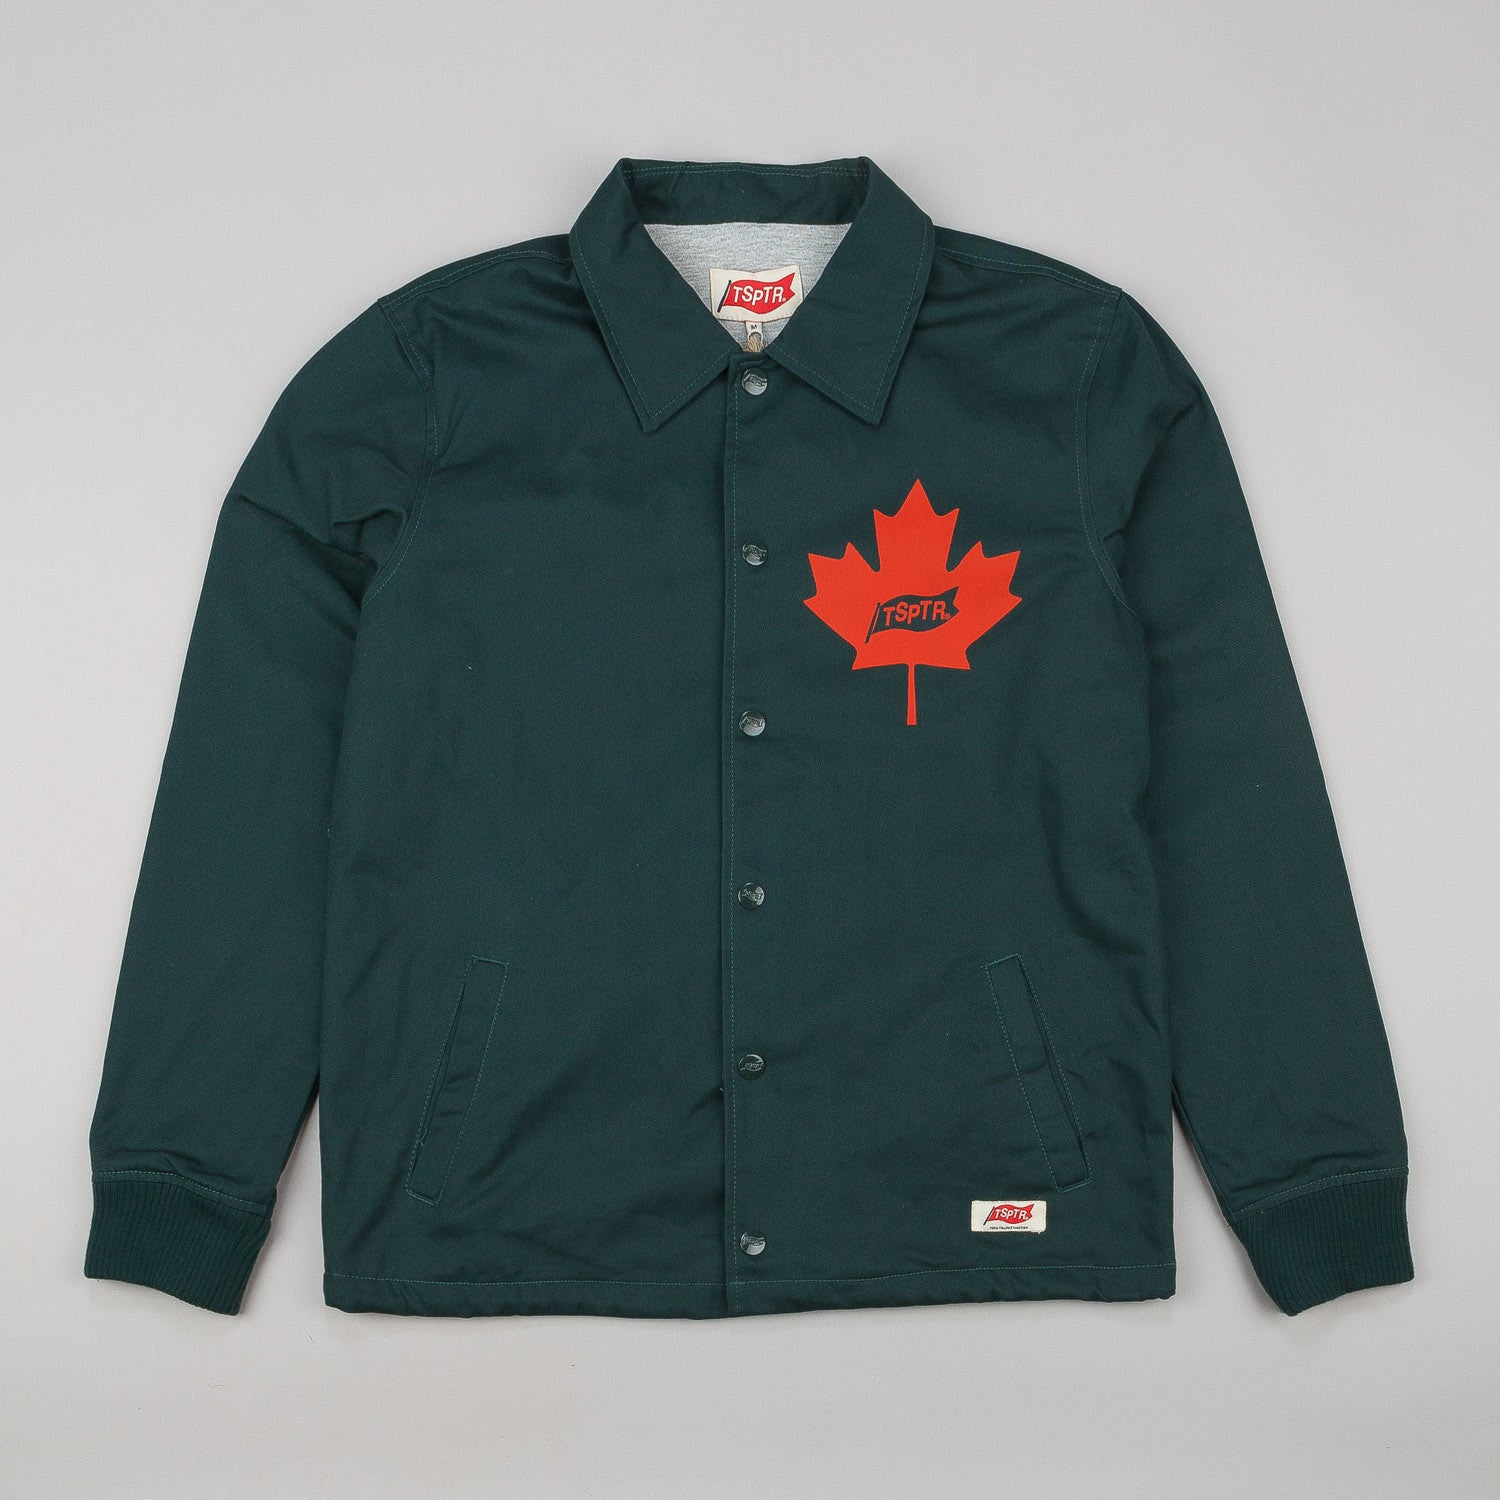 TSPTR Maple Leaf Jacket